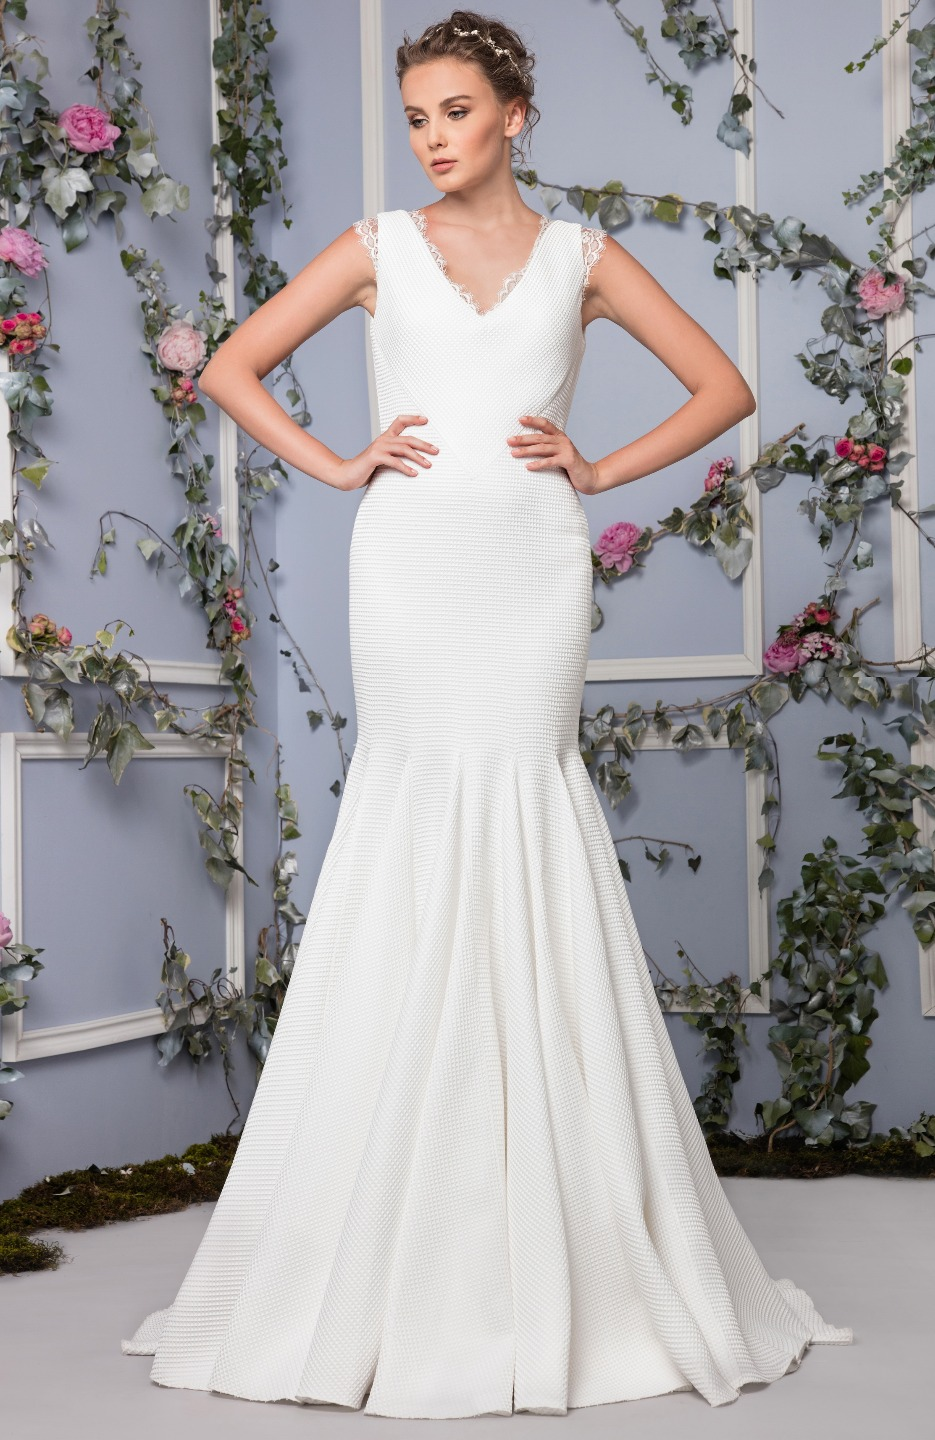 Romantic Fit and Flare Wedding Dress | Kleinfeld Bridal